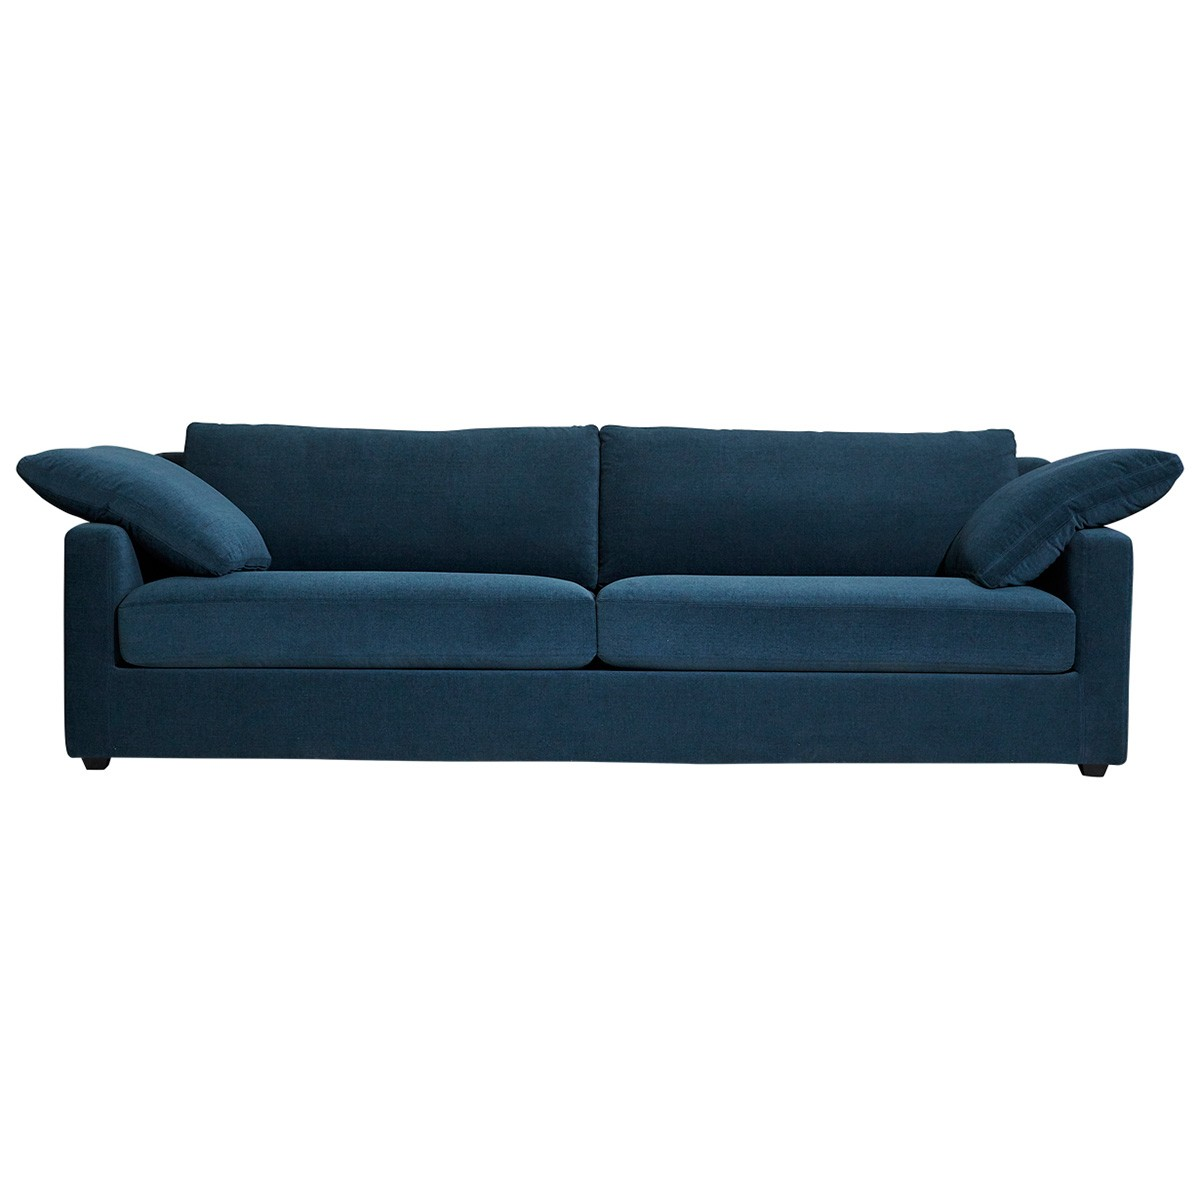 California Chenille Fabric Sofa, 3 Seater